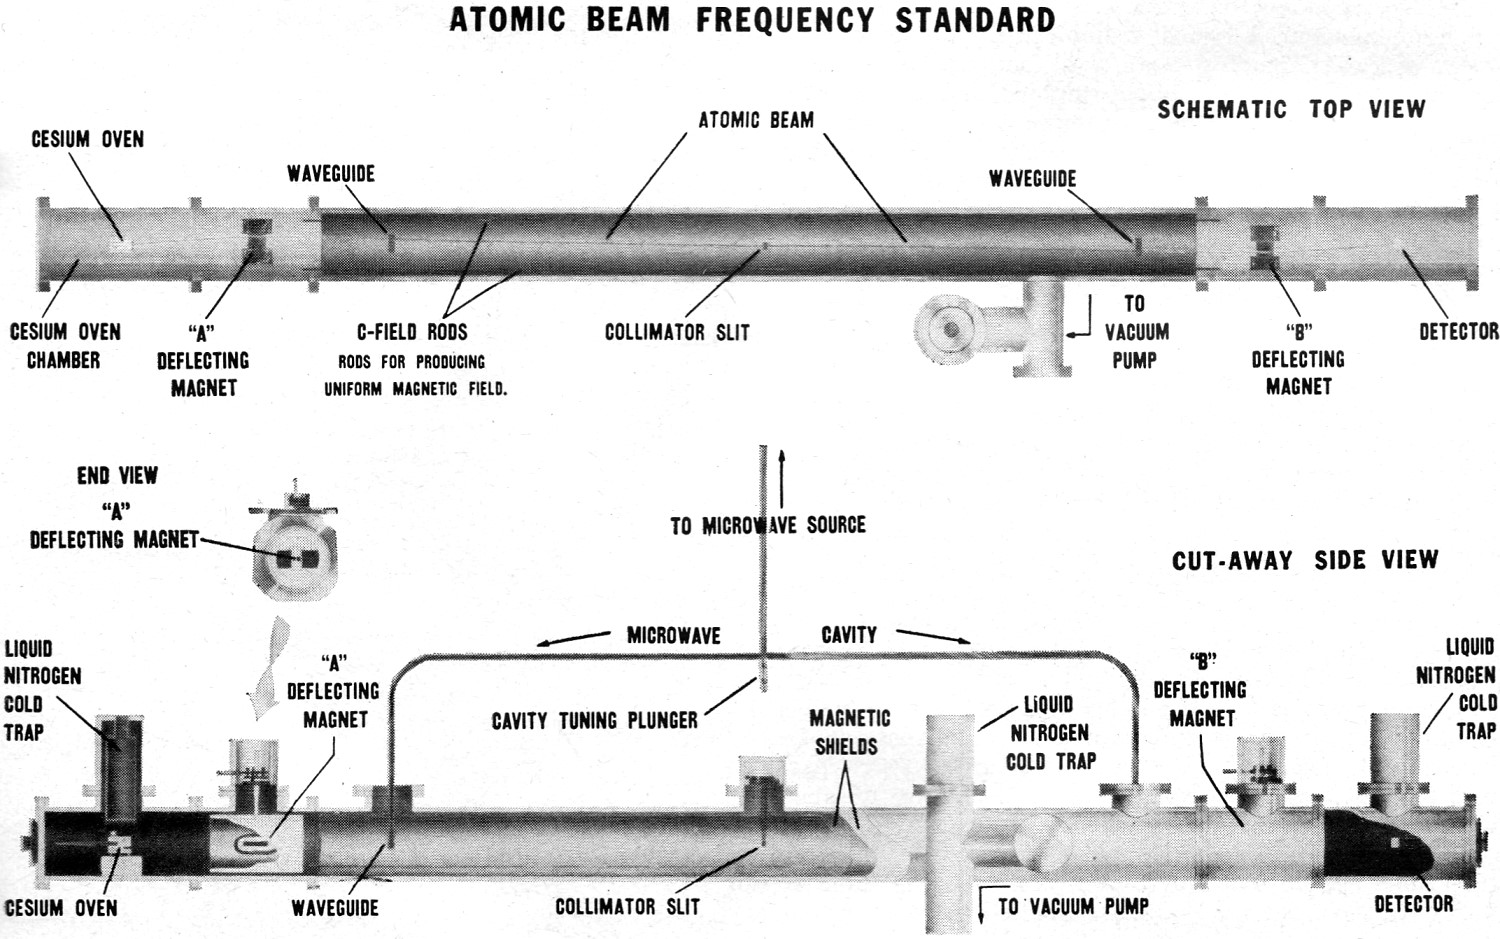 atomic beam frequency standard - rf cafe